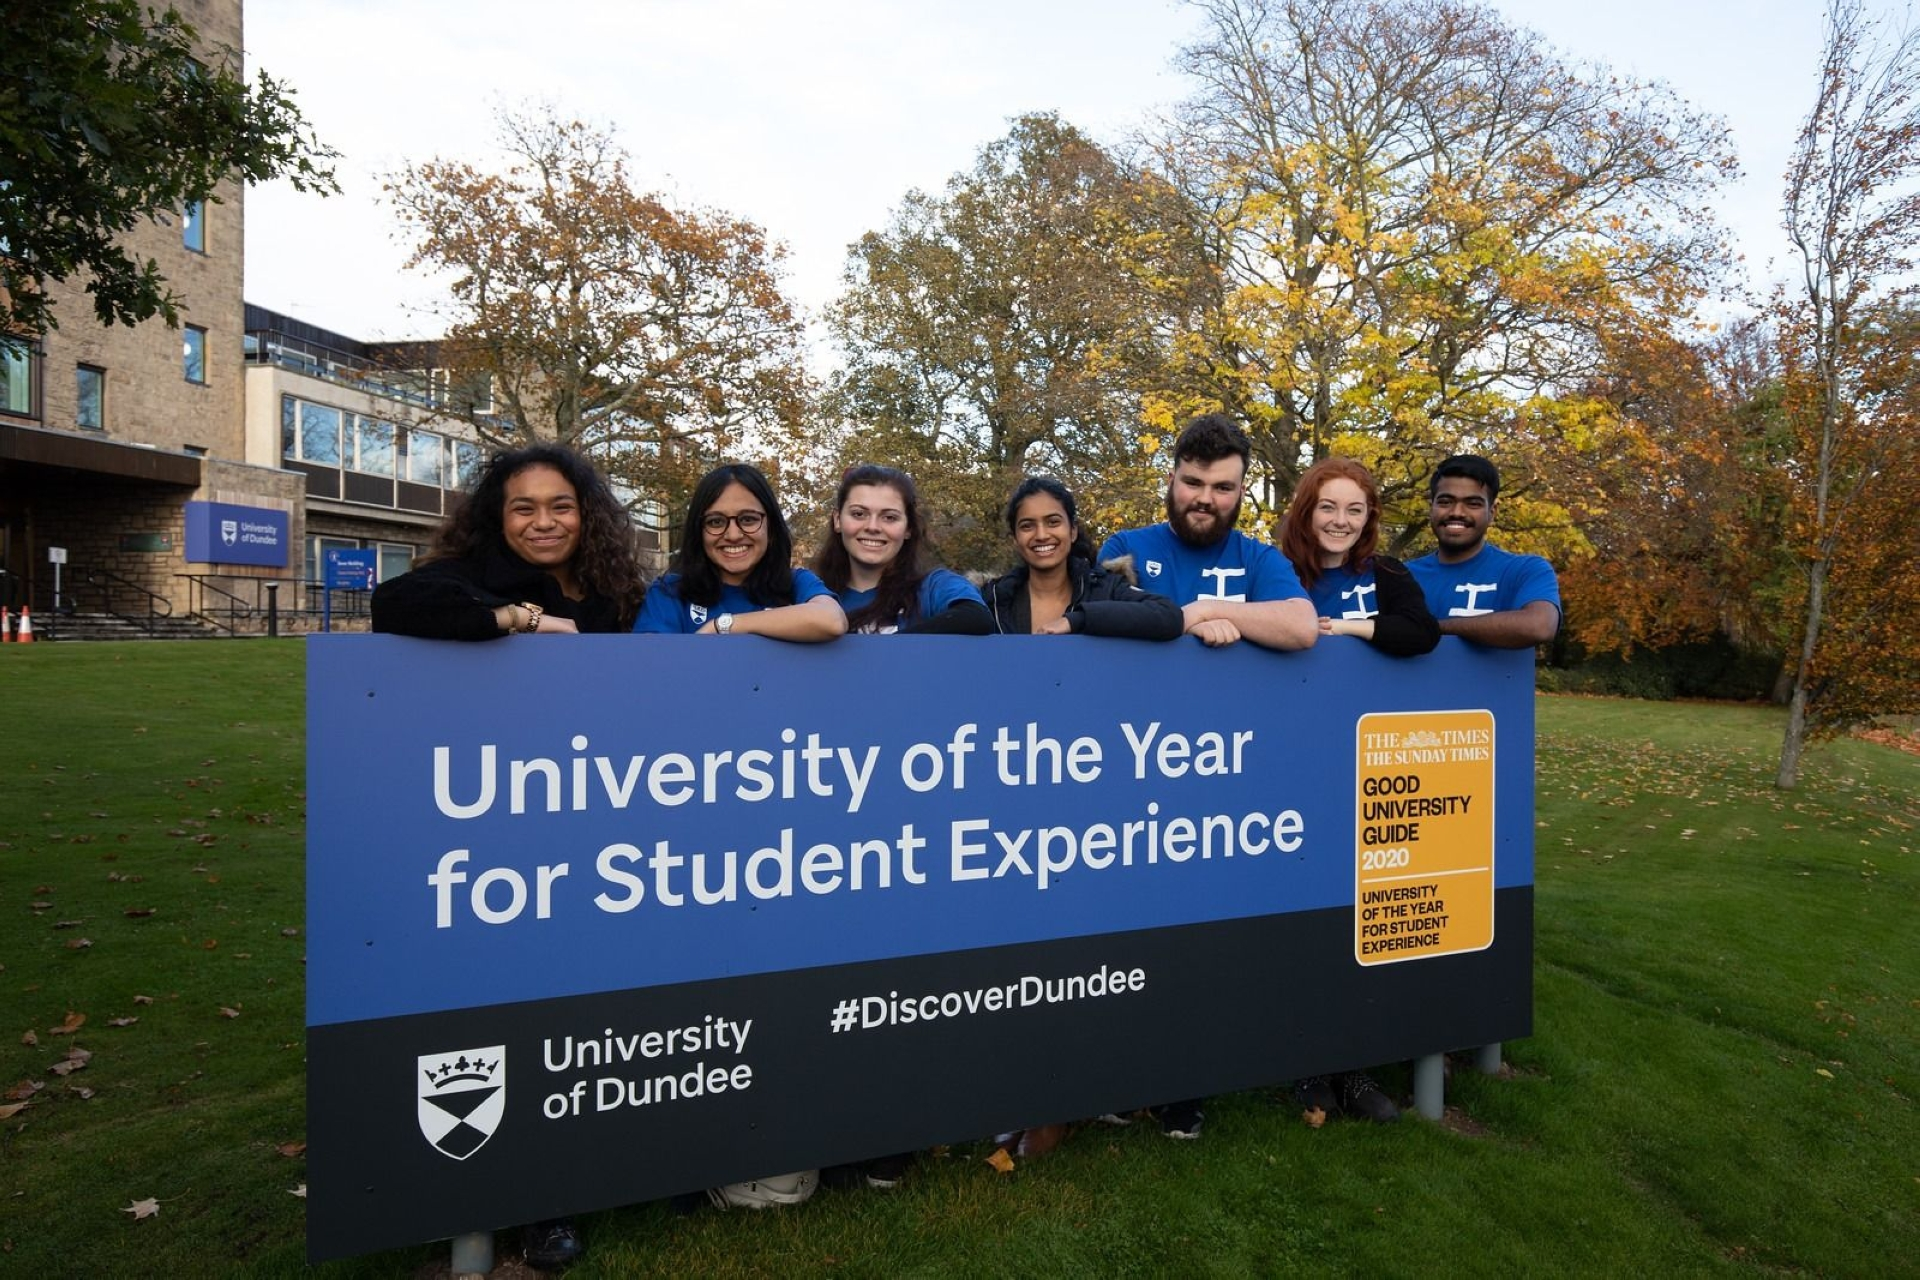 Pursue your studies at University of Dundee in the UK for the best student experience.